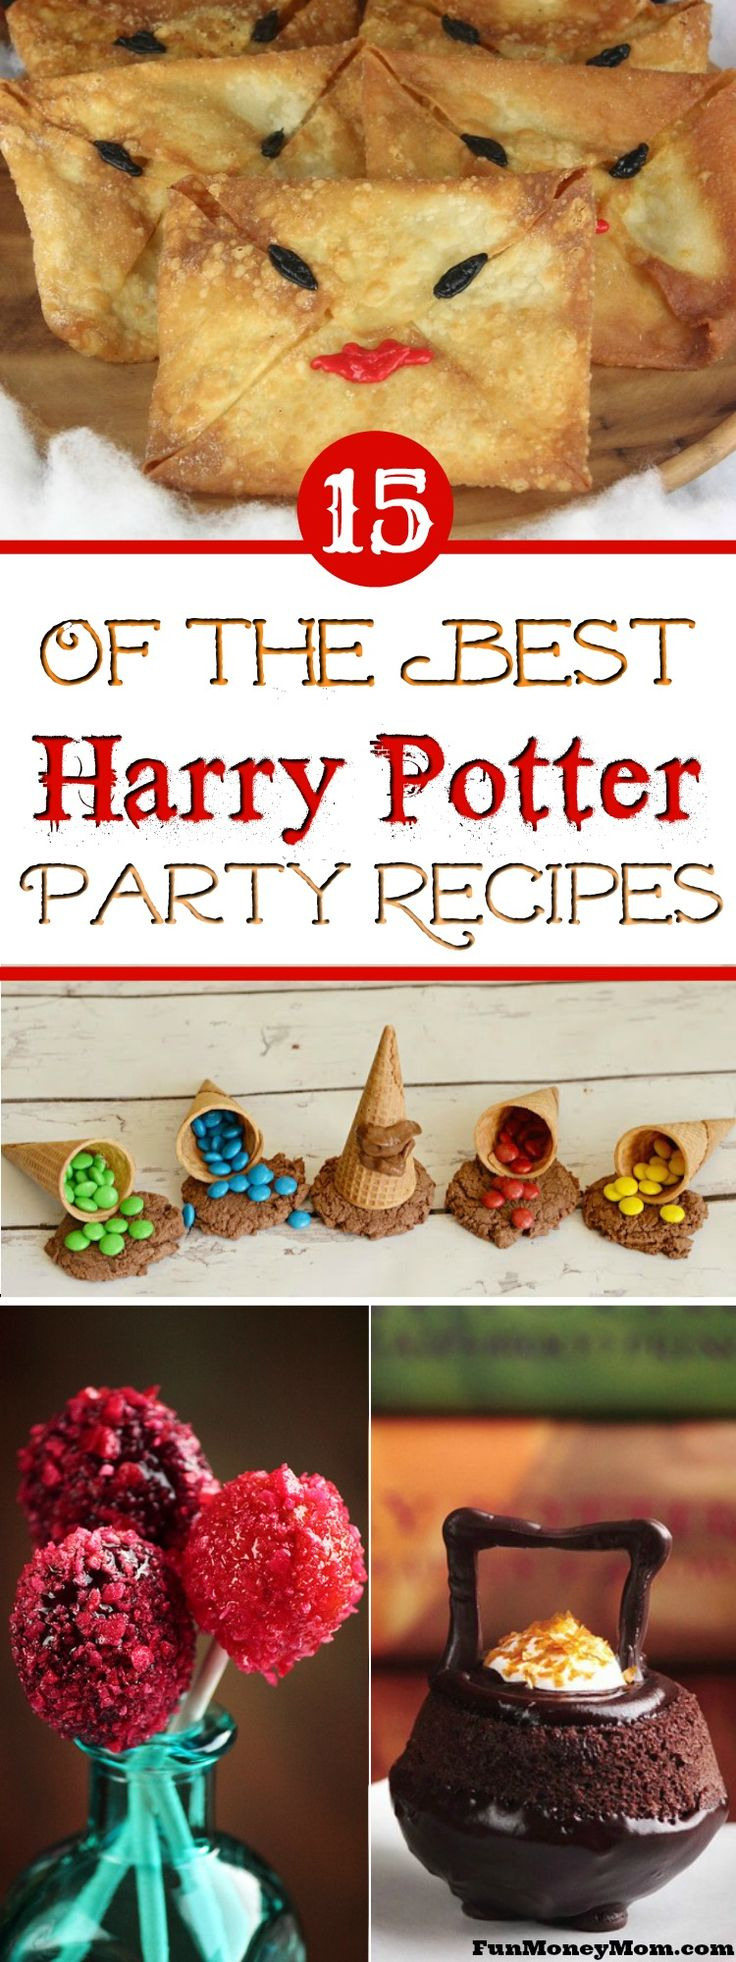 Harry Potter Recipes - These Harry Potter foods are perfect for a kids birthday party. Any Harry Potter party needs Butterbeer and chocolate frogs, right? #HarryPotter #HarryPotterParty